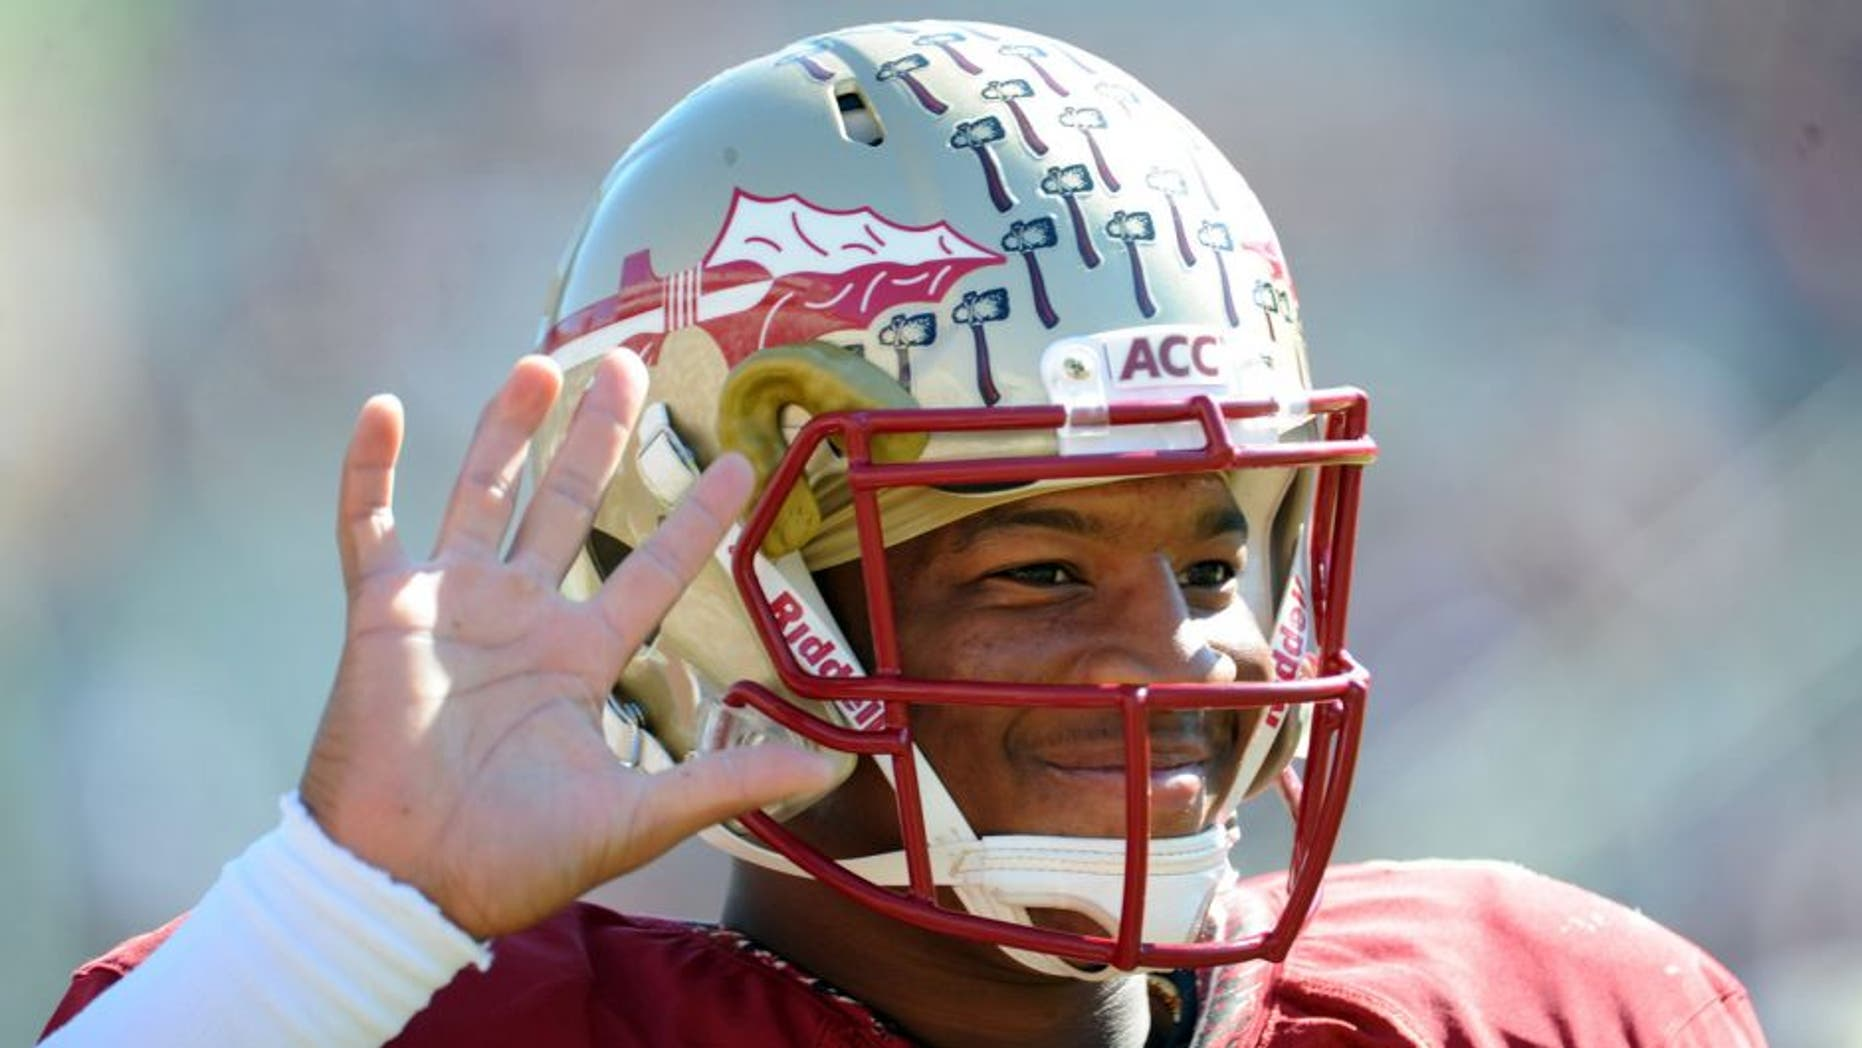 Oct 26, 2013; Tallahassee, FL, USA; Florida State Seminoles quarterback Jameis Winston (5) warms up before the start of the game against the North Carolina State Wolfpack at Doak Campbell Stadium. Mandatory Credit: Melina Vastola-USA TODAY Sports